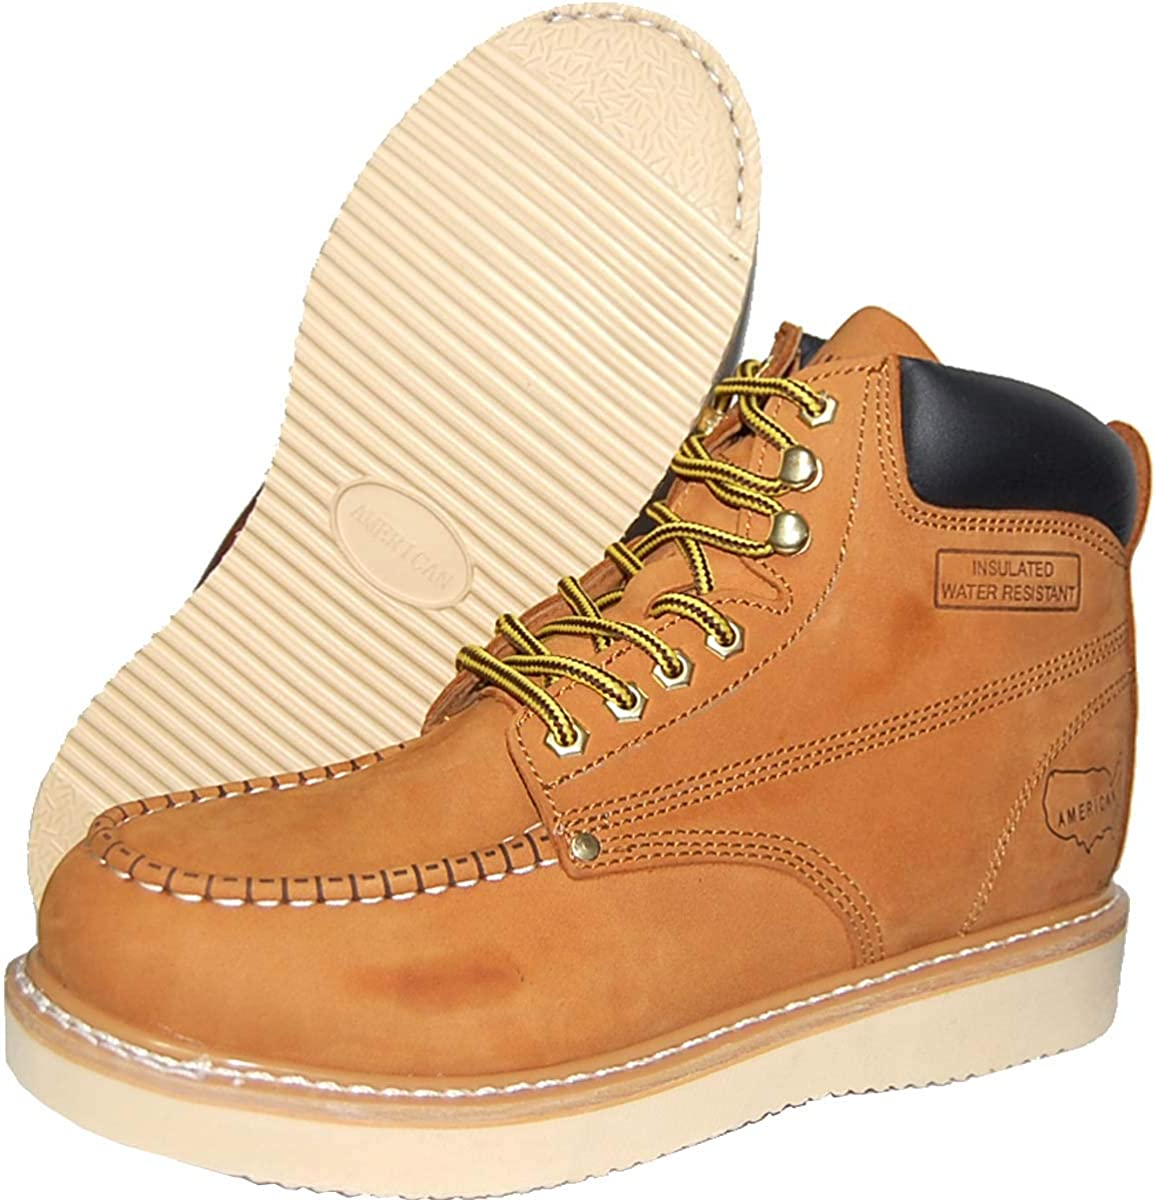 6 inch leather work boots